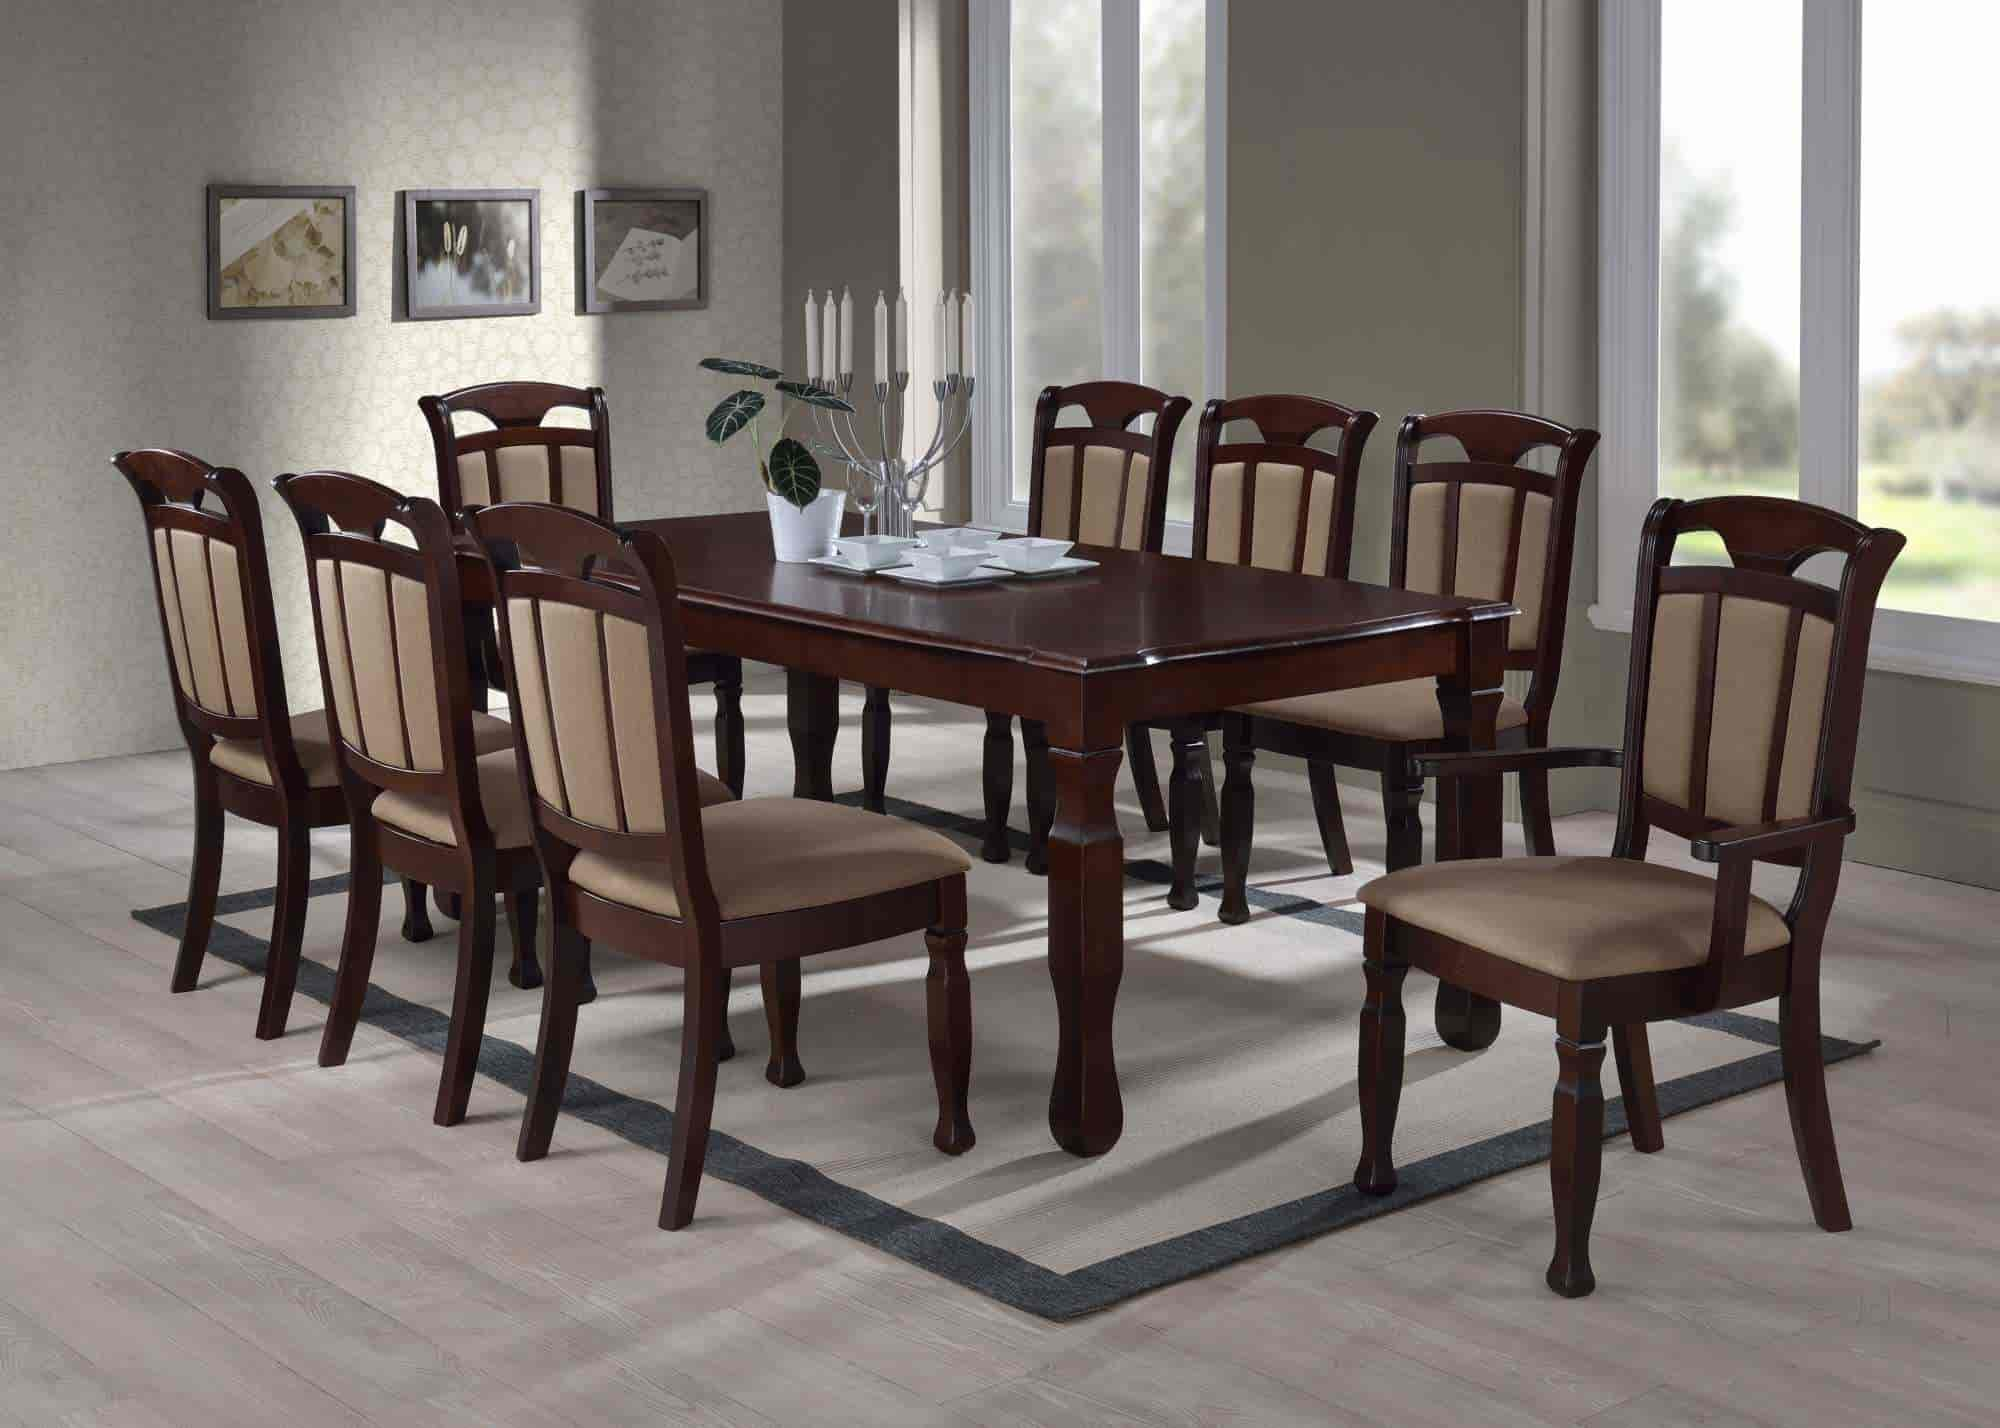 Damro Dining Chairs Prices | Room Decoration Ideas